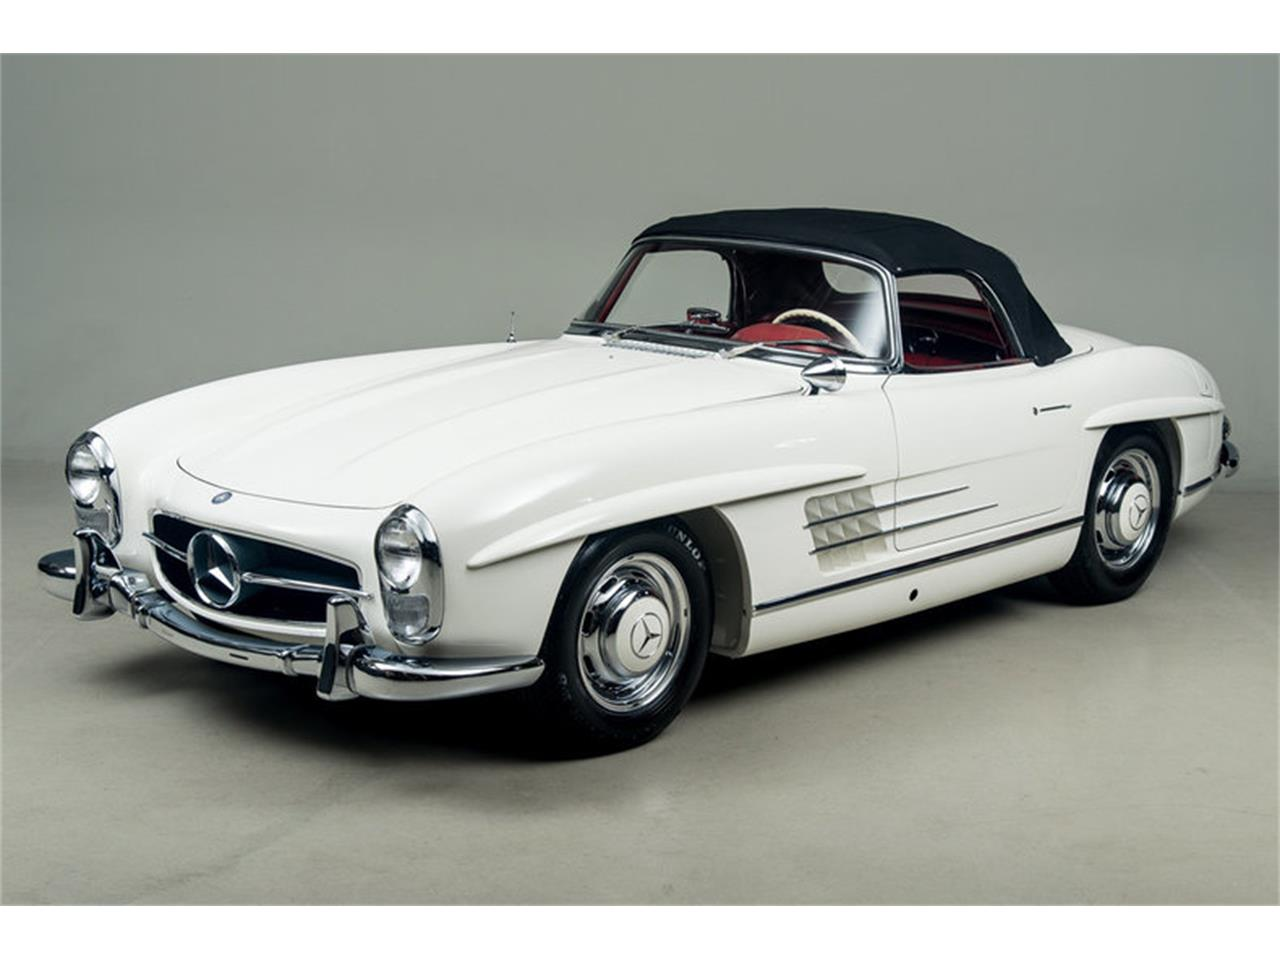 Large Picture of Classic 1963 300SL Roadster located in Scotts Valley California Auction Vehicle - EFPZ